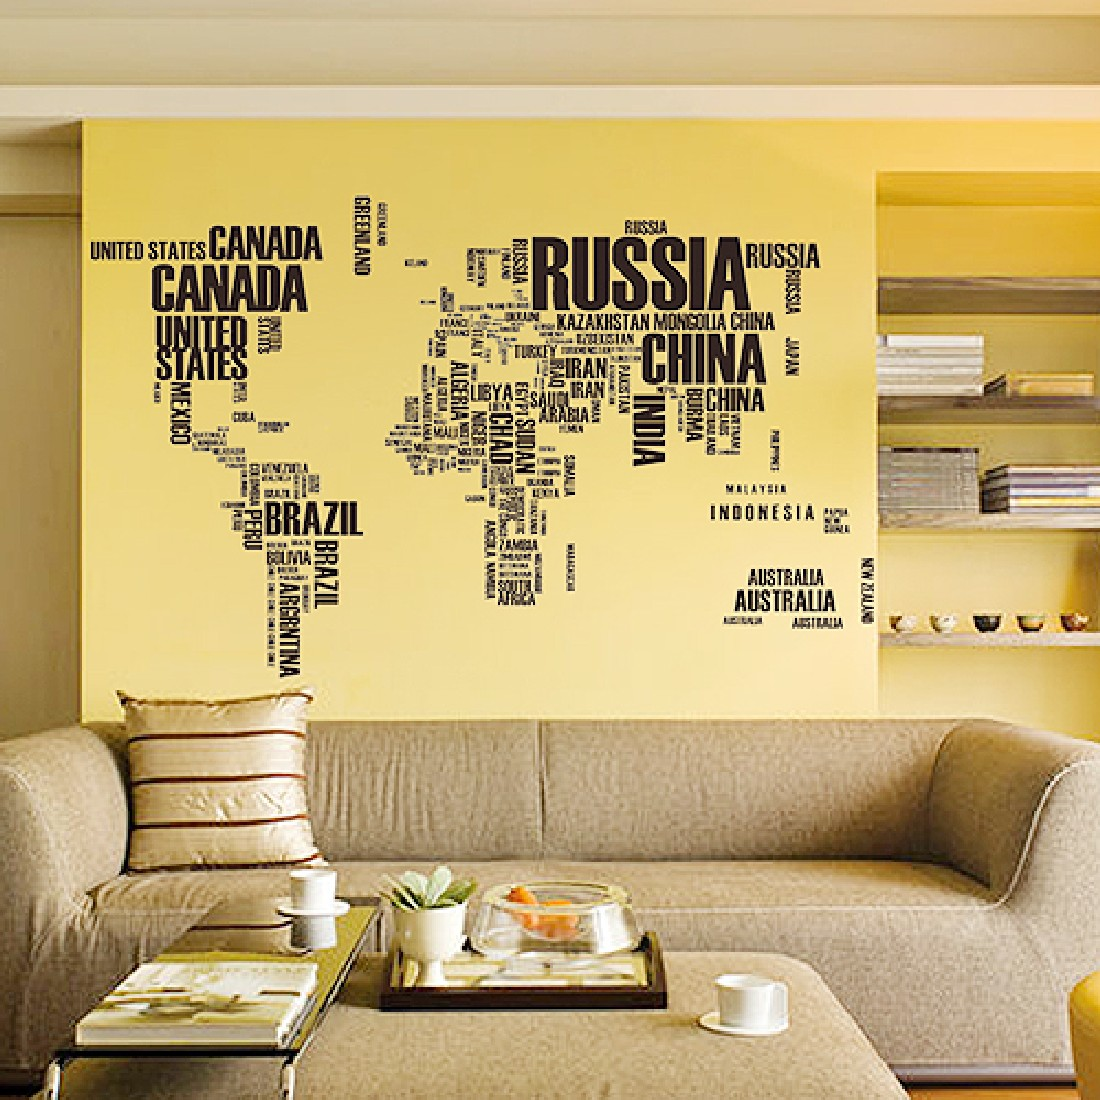 Unique Wall Art Quotes Diy Image - The Wall Art Decorations ...